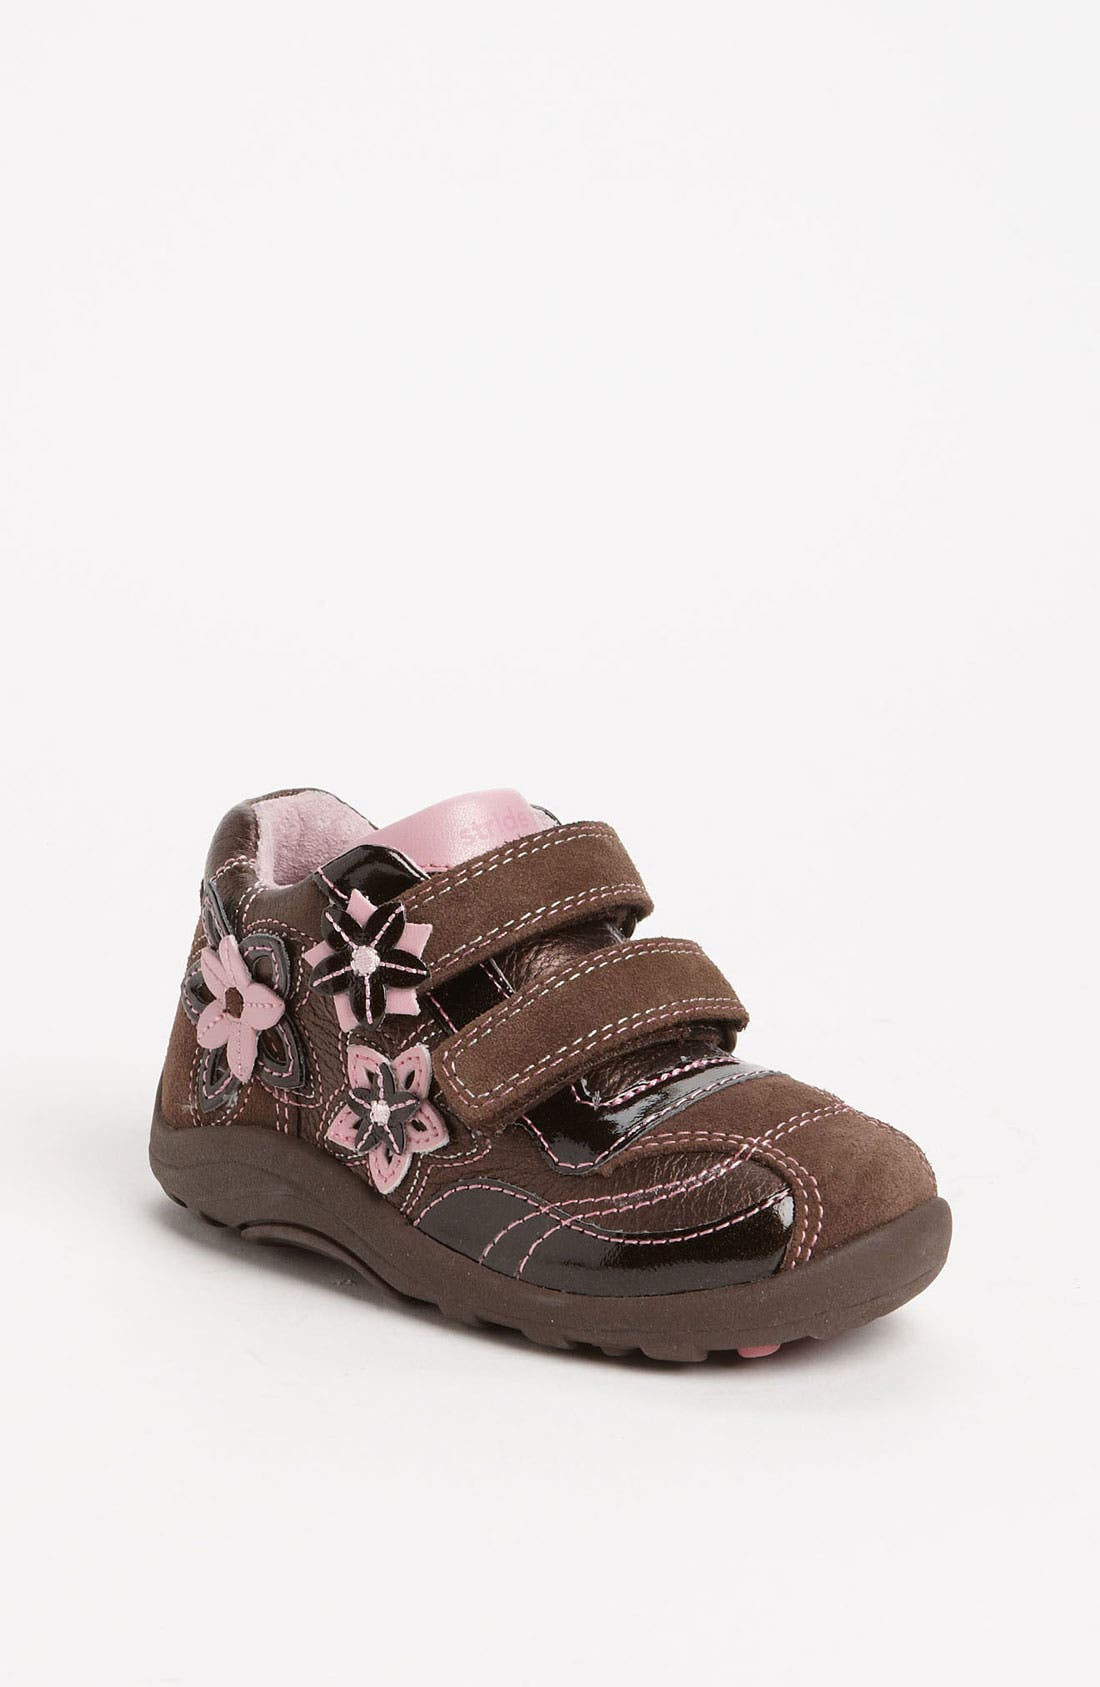 Alternate Image 1 Selected - Stride Rite 'Darling Dora' Sneaker (Baby, Walker & Toddler)